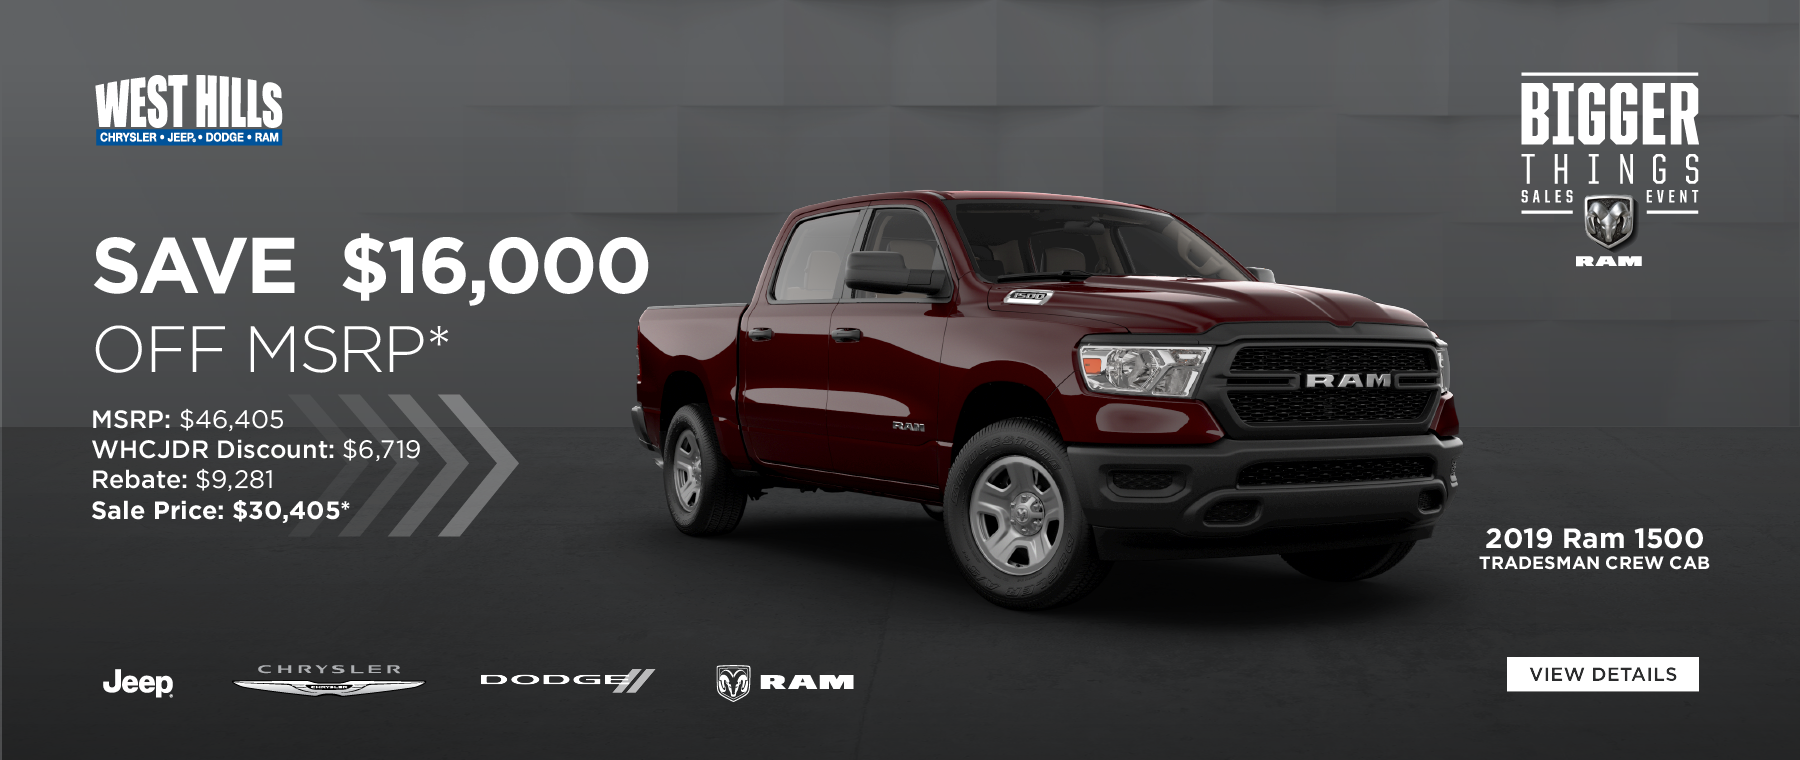 2019 Ram 1500 Tradesman Crew Cab (Featured vehicle)  MSRP: $46,405 WHCJDR Discount: $6,719 Rebate: $9,281 Sale Price: $30,405* SAVE $16,000 OFF MSRP*    * Offer valid on 2019 Ram 1500 Tradesman Crew Cab. VIN: 1C6SRFNT9KN653007. MSRP: $46,405. WHCJDR Discount: $6,719. Rebate: $9,281. Sale Price: $30,405. Based on approval of program ID 41CKL2. Subject to credit approval. Down payment and monthly payment may vary. Excludes taxes, tags, registration and title, insurance and dealer charges. A negotiable dealer documentary service fee of up to $150 may be added to the sale price or capitalized cost. Exp. 6/30/2019.